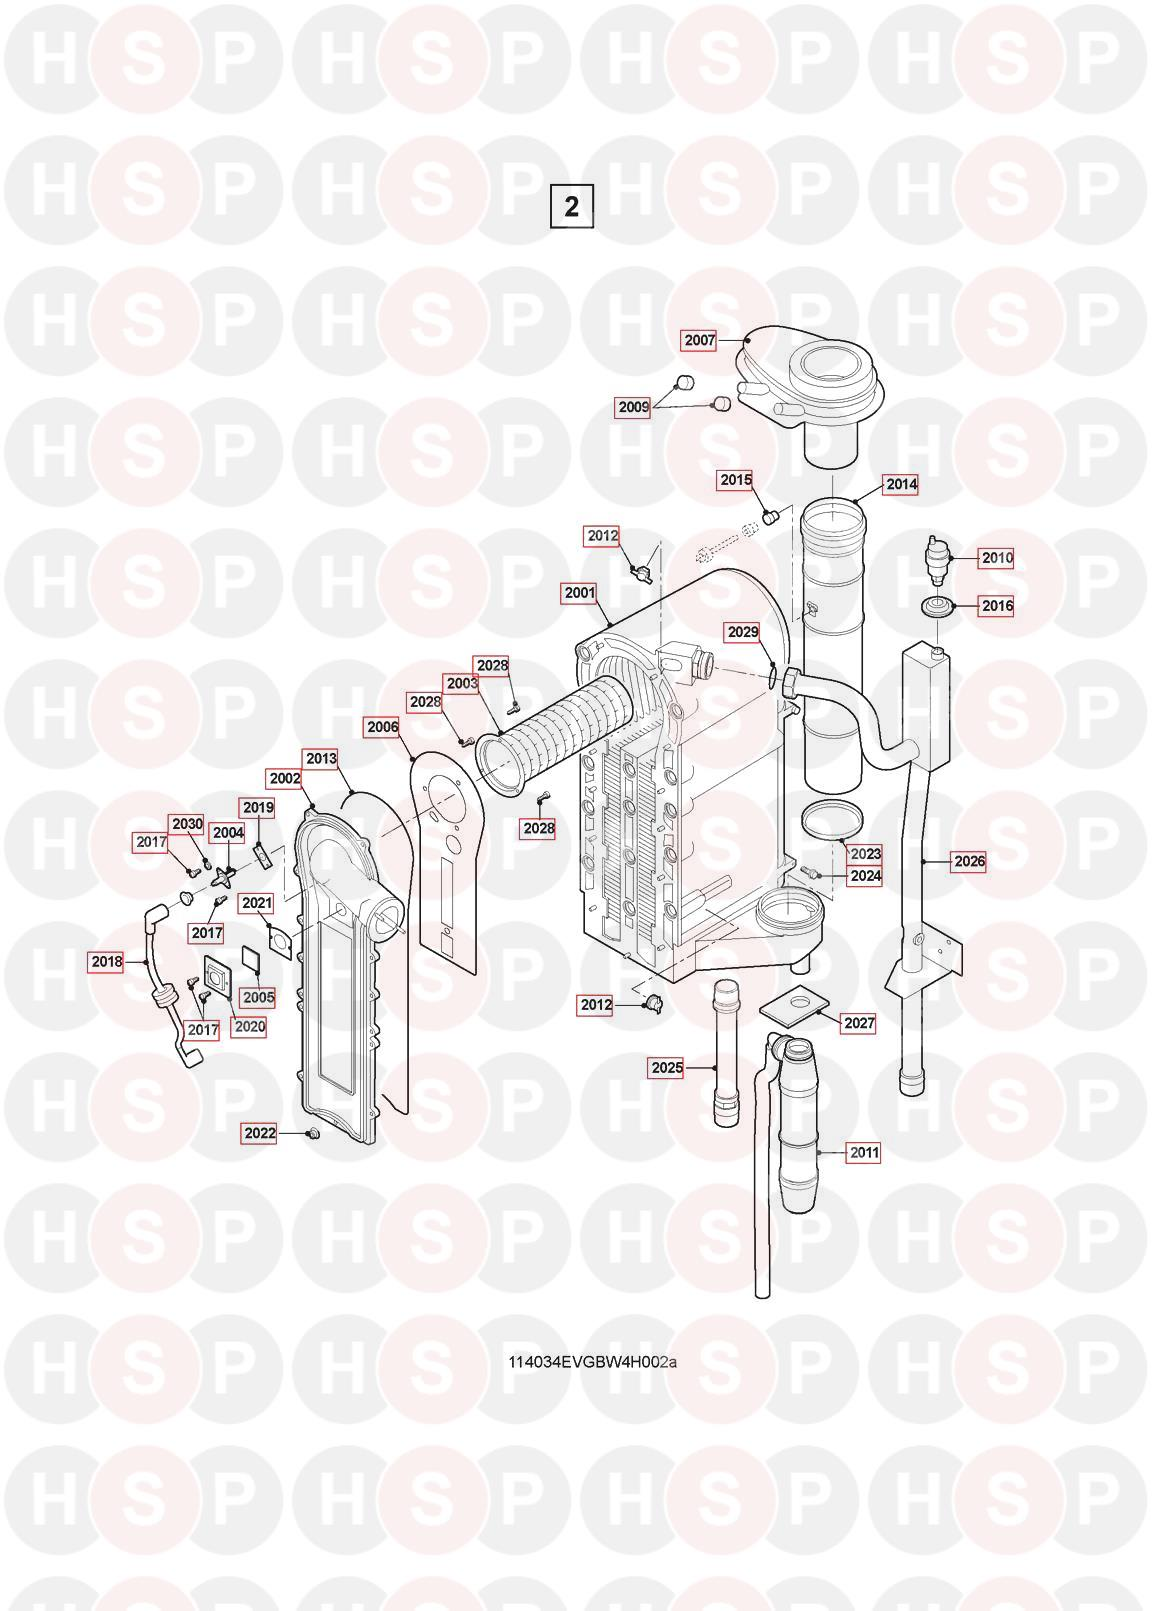 Burner Heat Exchanger diagram for Remeha-Commercial Quinta 115